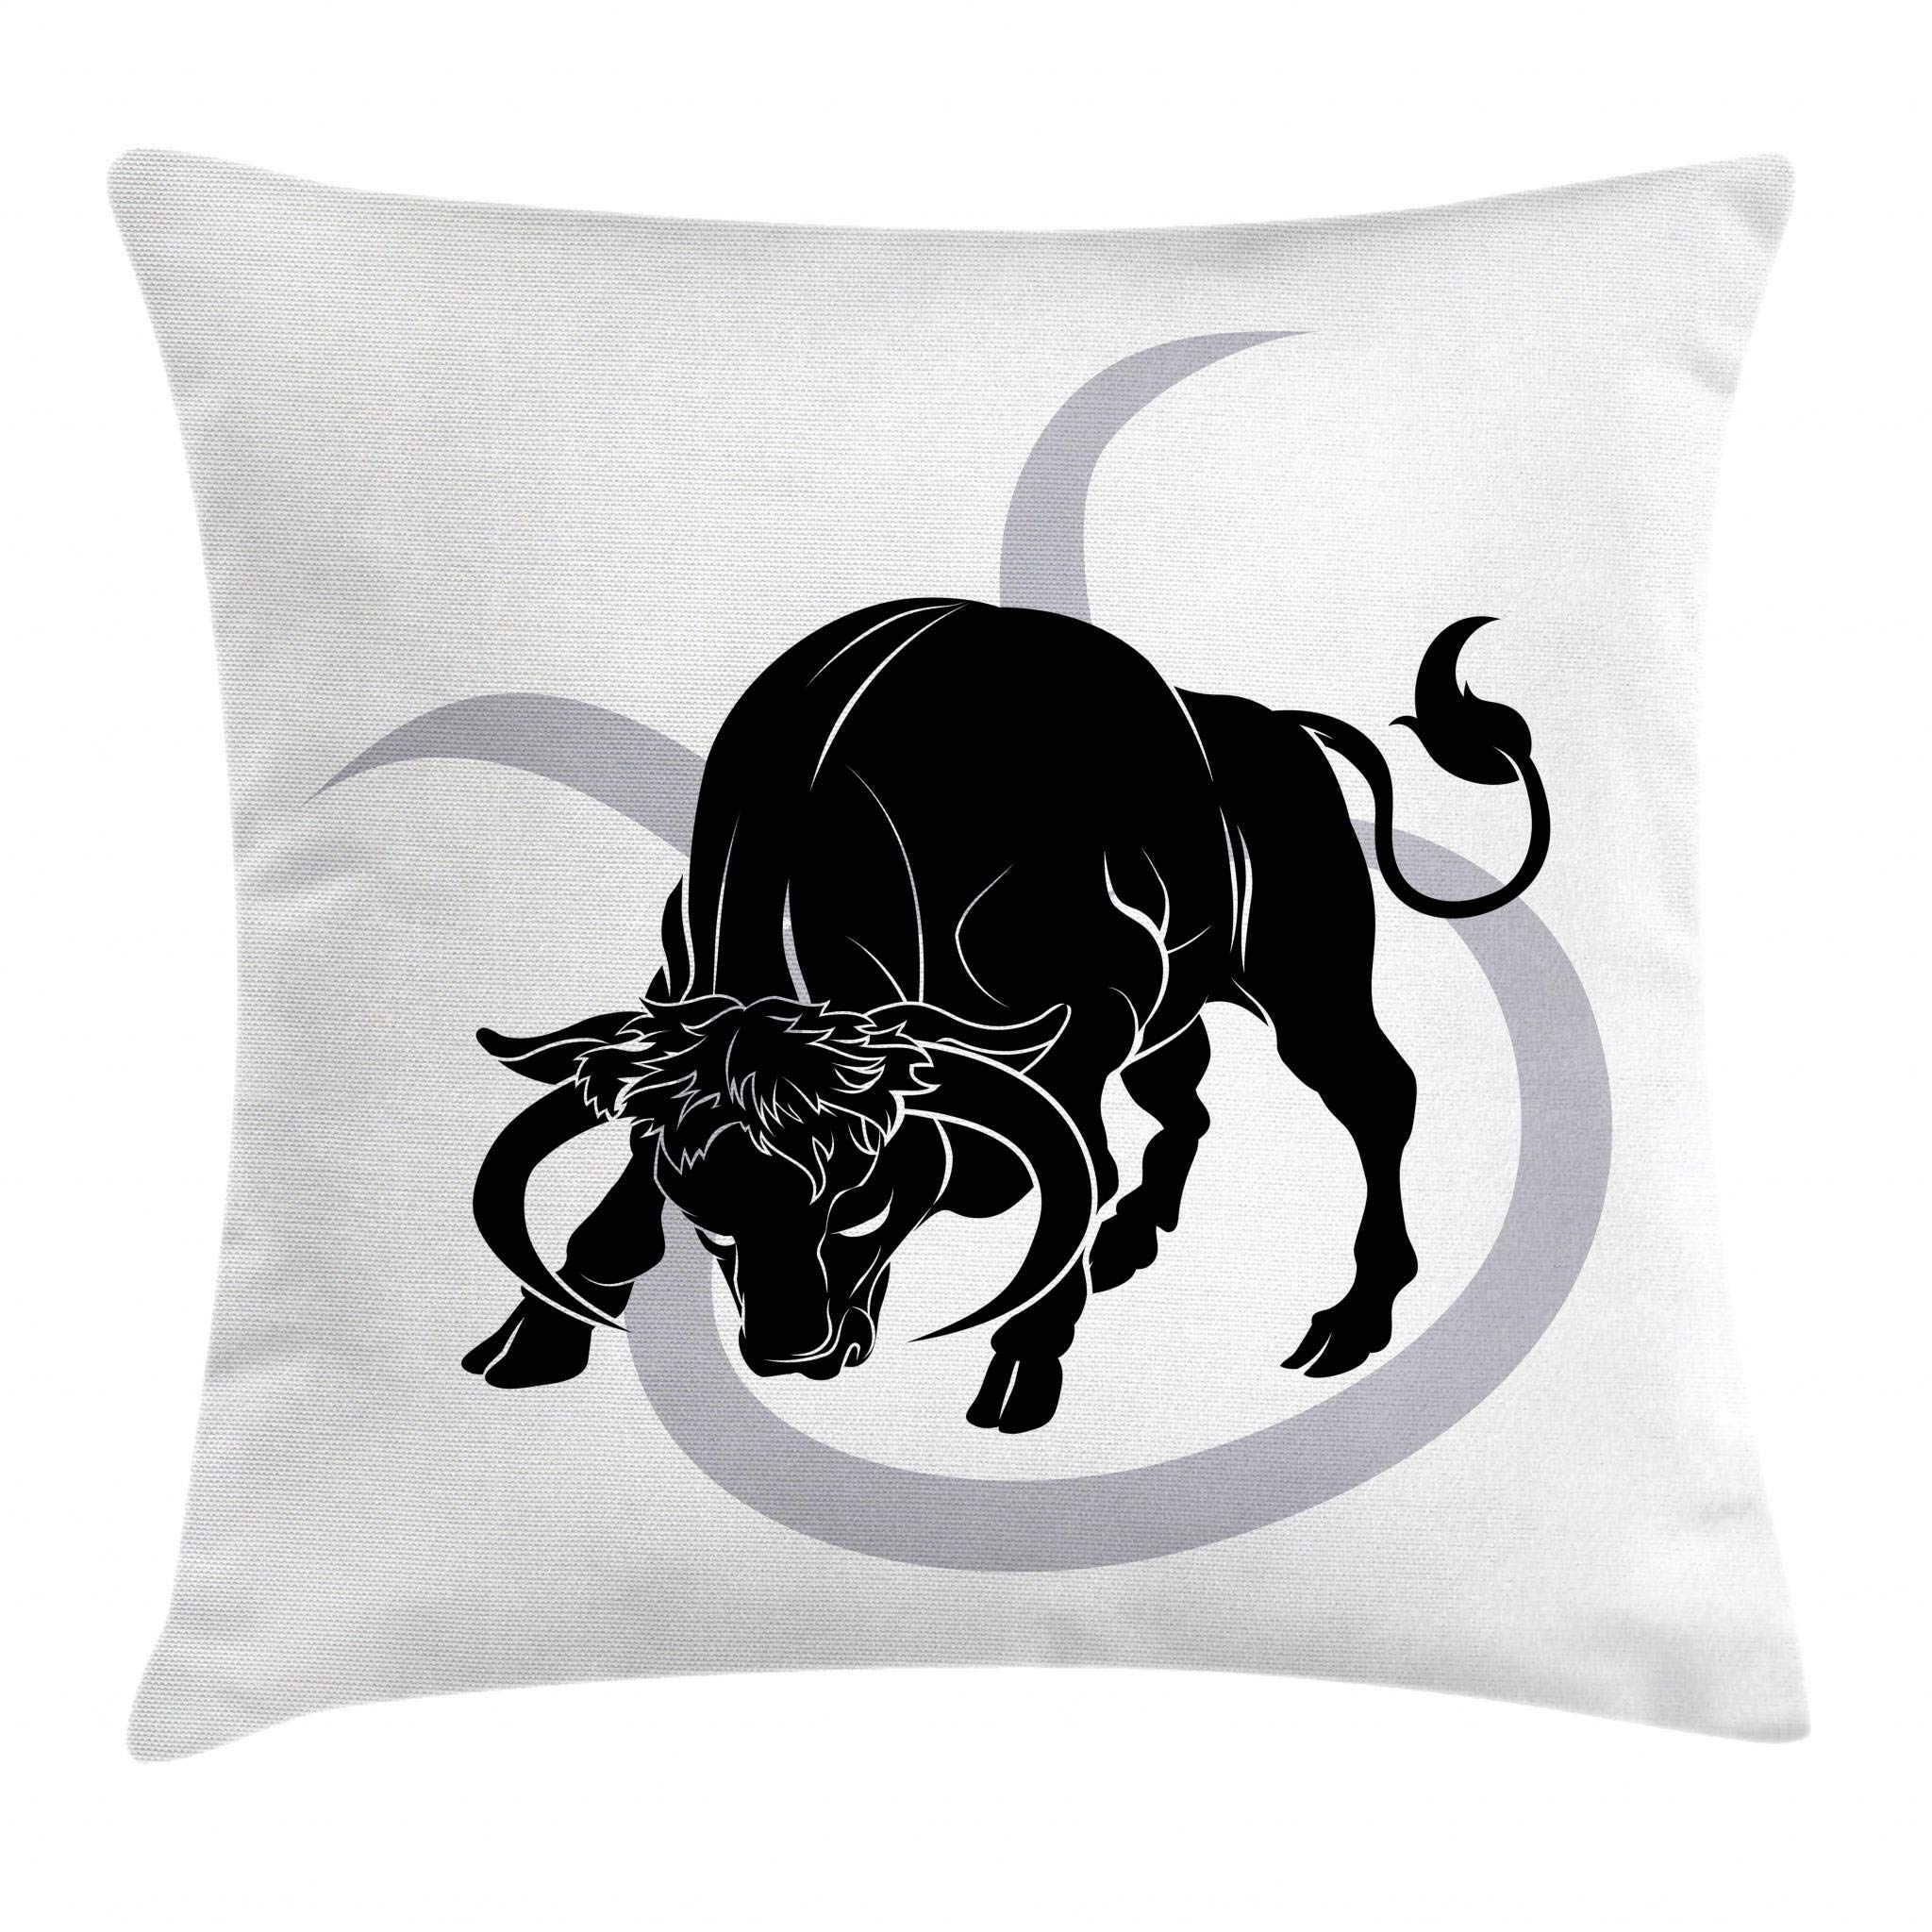 Ambesonne Zodiac Taurus Throw Pillow Cushion Cover, Black Silhouette of Animal Ox on Horoscope Icon Astrology Symbol, Decorative Square Accent Pillow Case, 18 X 18 Inches, Pale Grey Black White